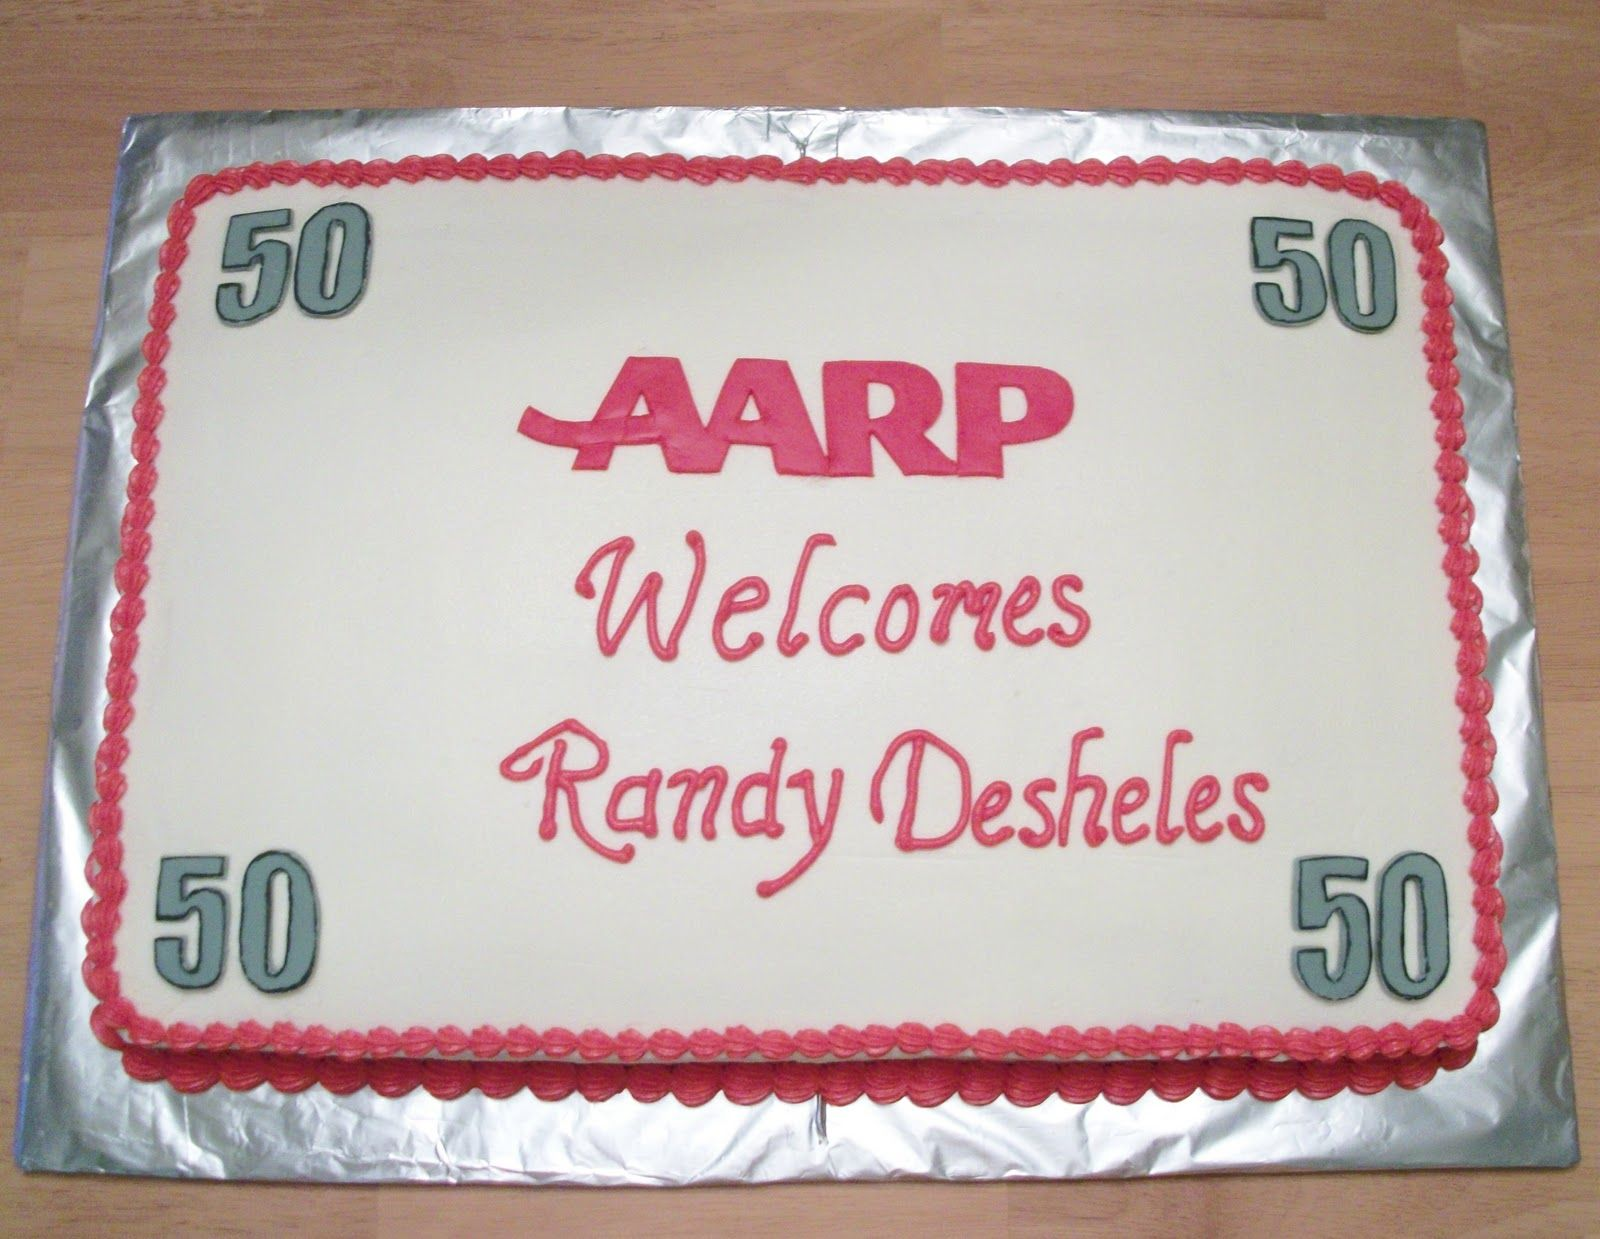 AARP welcome to 50 cake 50th Birthday Party Favors and Ideas